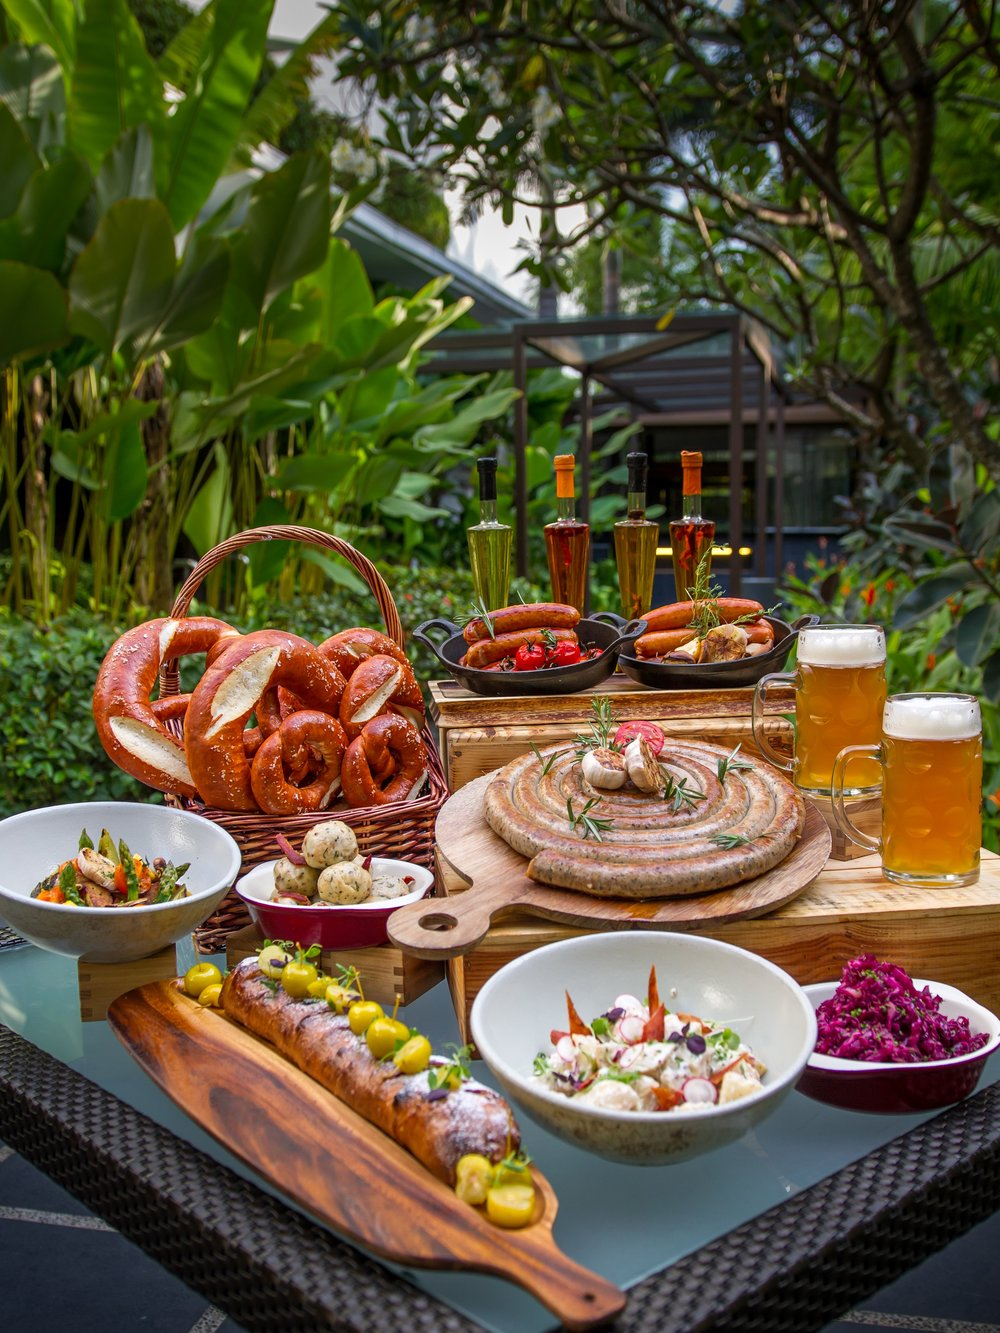 Oktoberfest (2016) at Melt Cafe | Photo Credit: Mandarin Oriental, Singapore